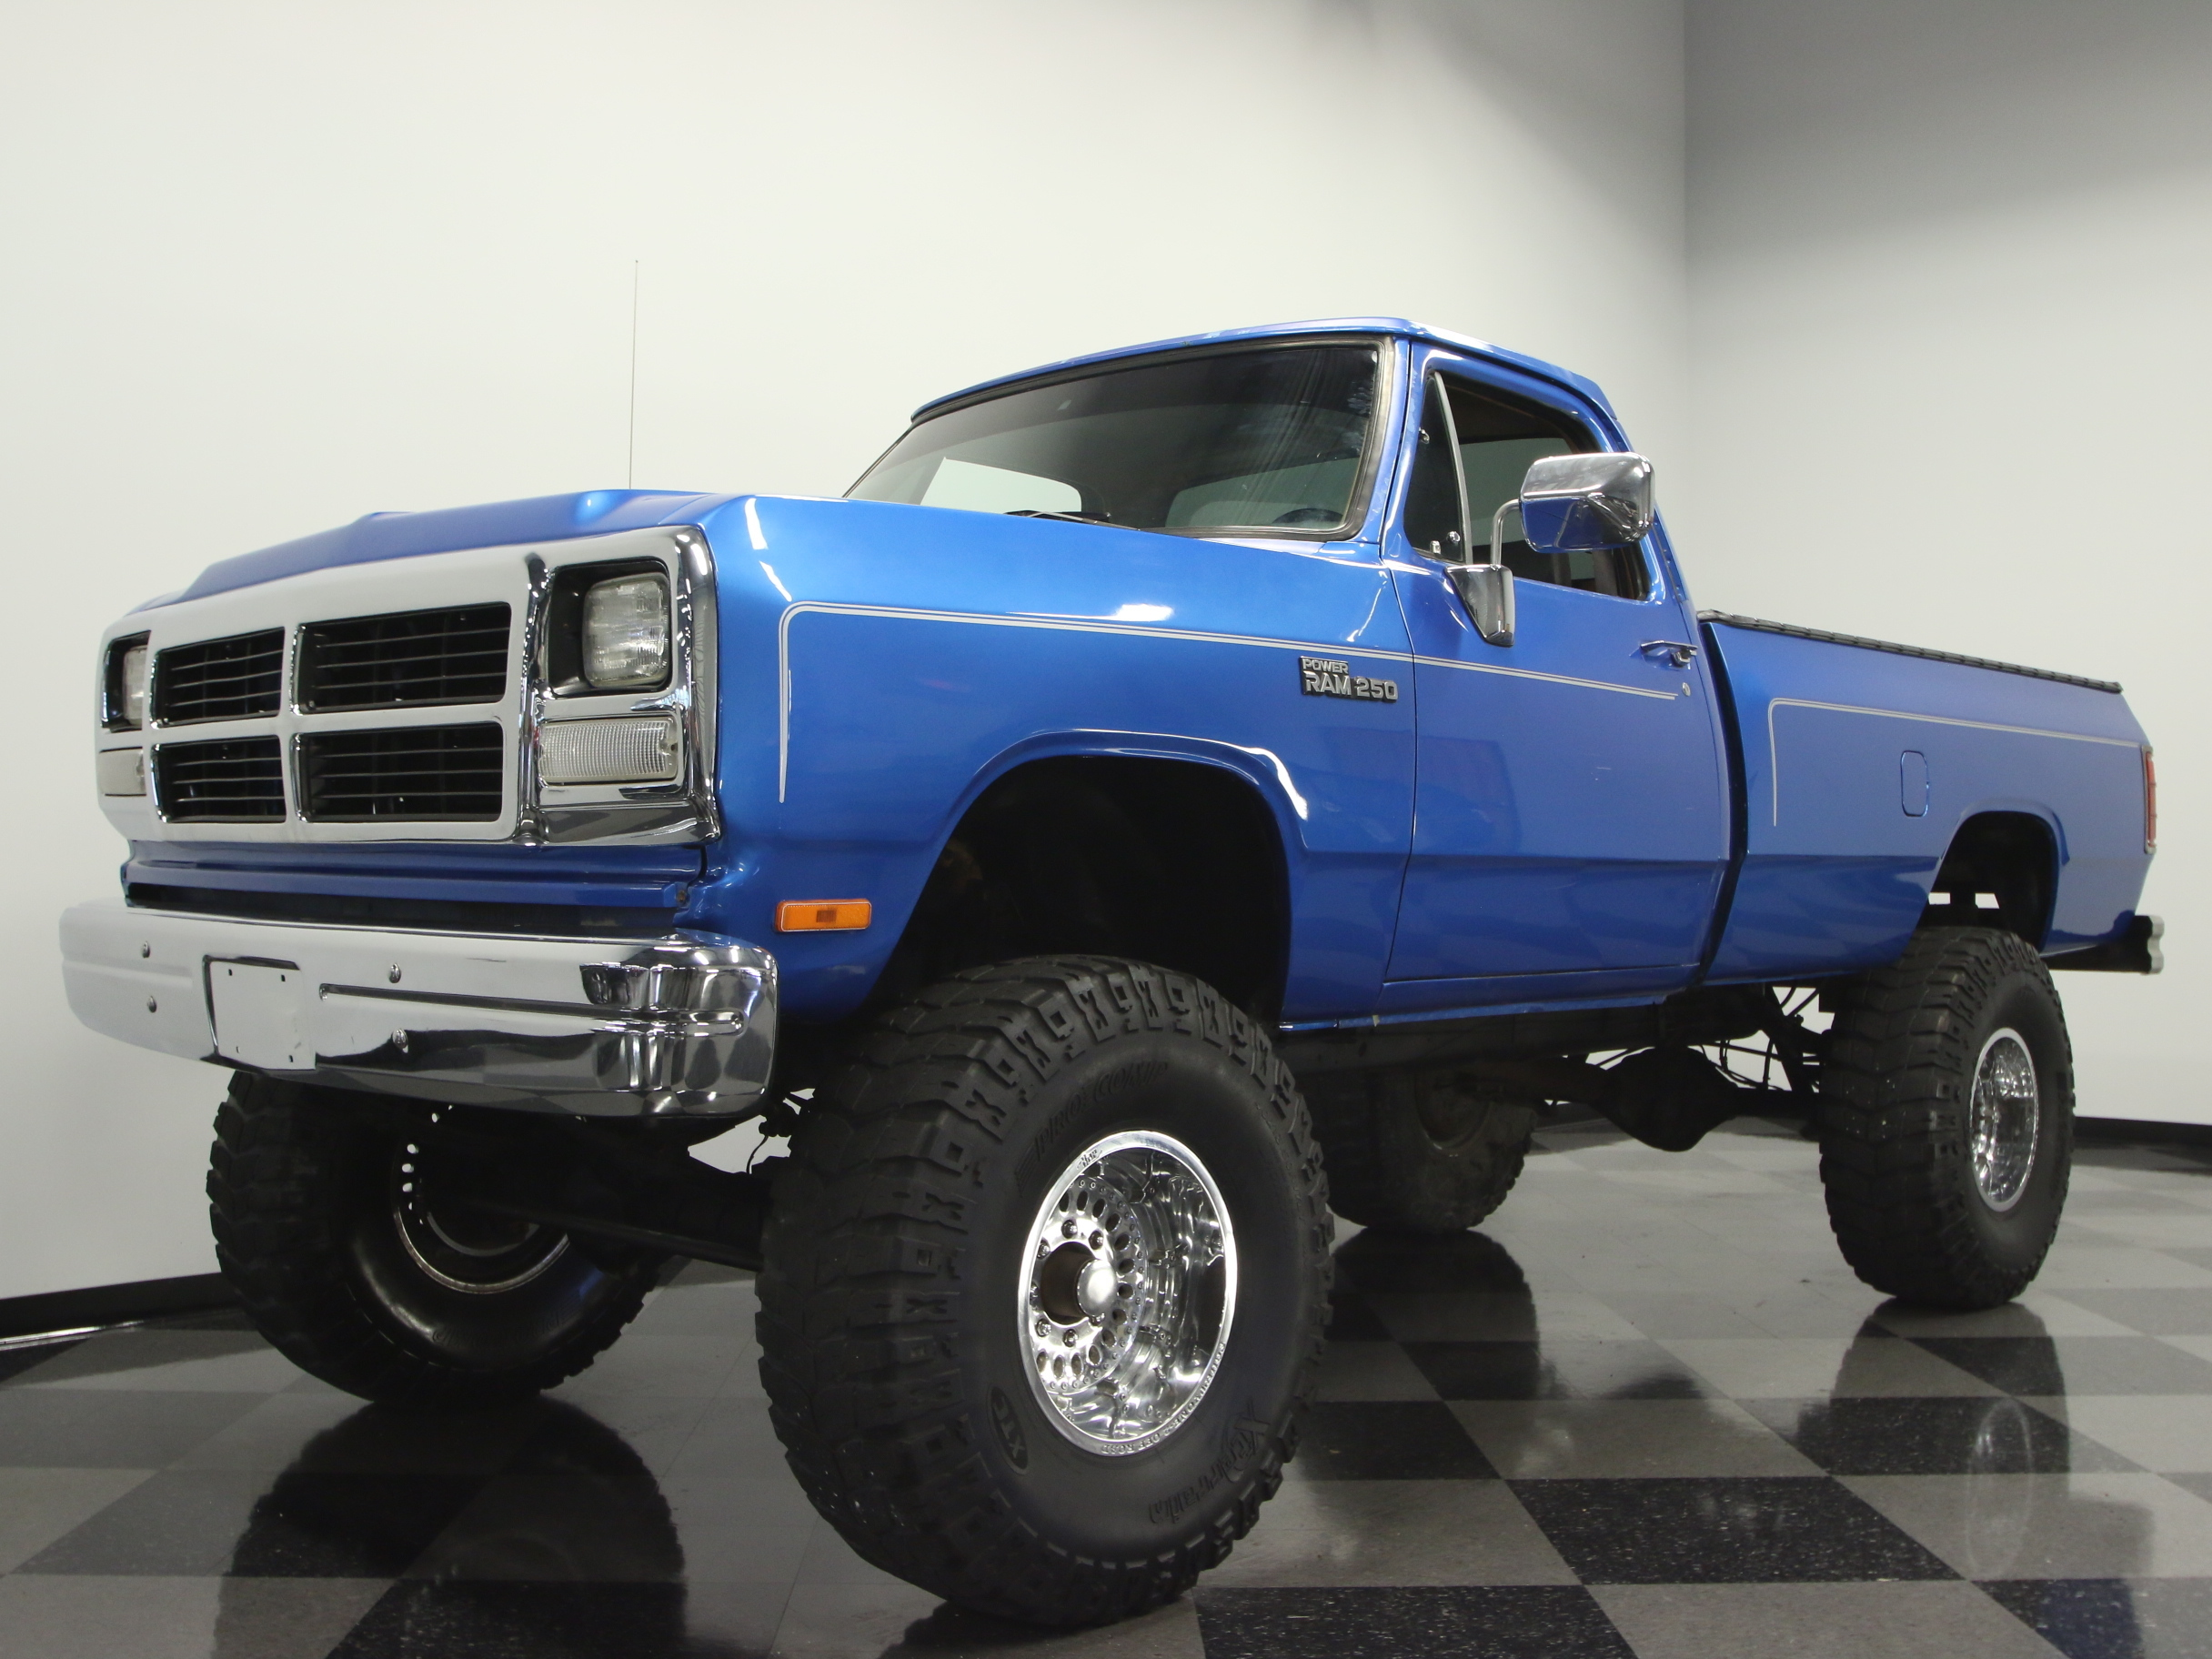 Dallas Car Show >> 1993 Dodge Power Ram 250 | Streetside Classics - The Nation's Trusted Classic Car Consignment Dealer